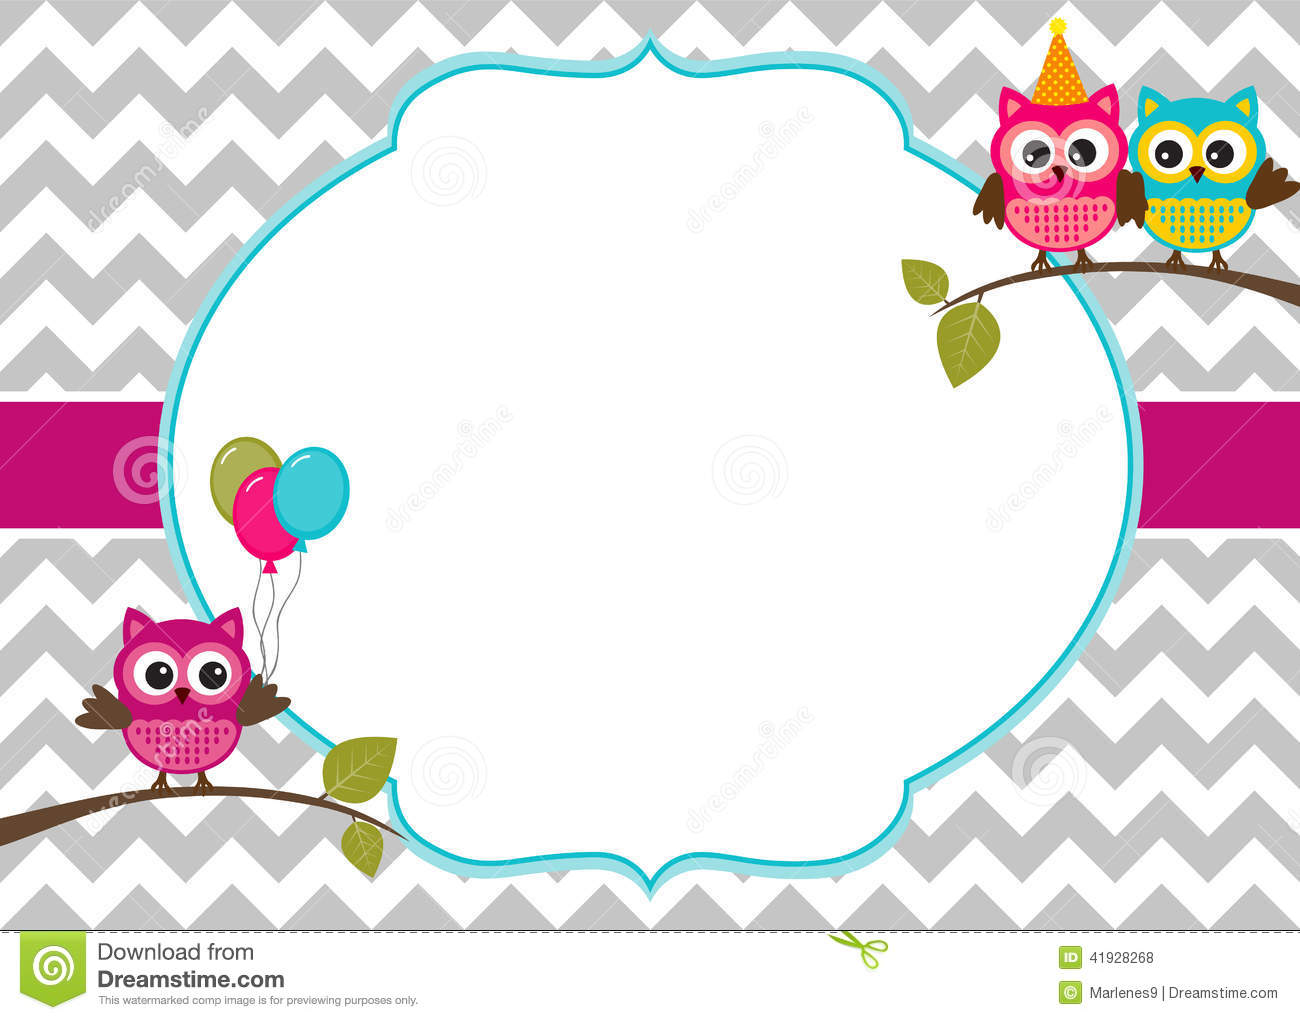 Owls Baby Shower Invitations is nice invitations sample